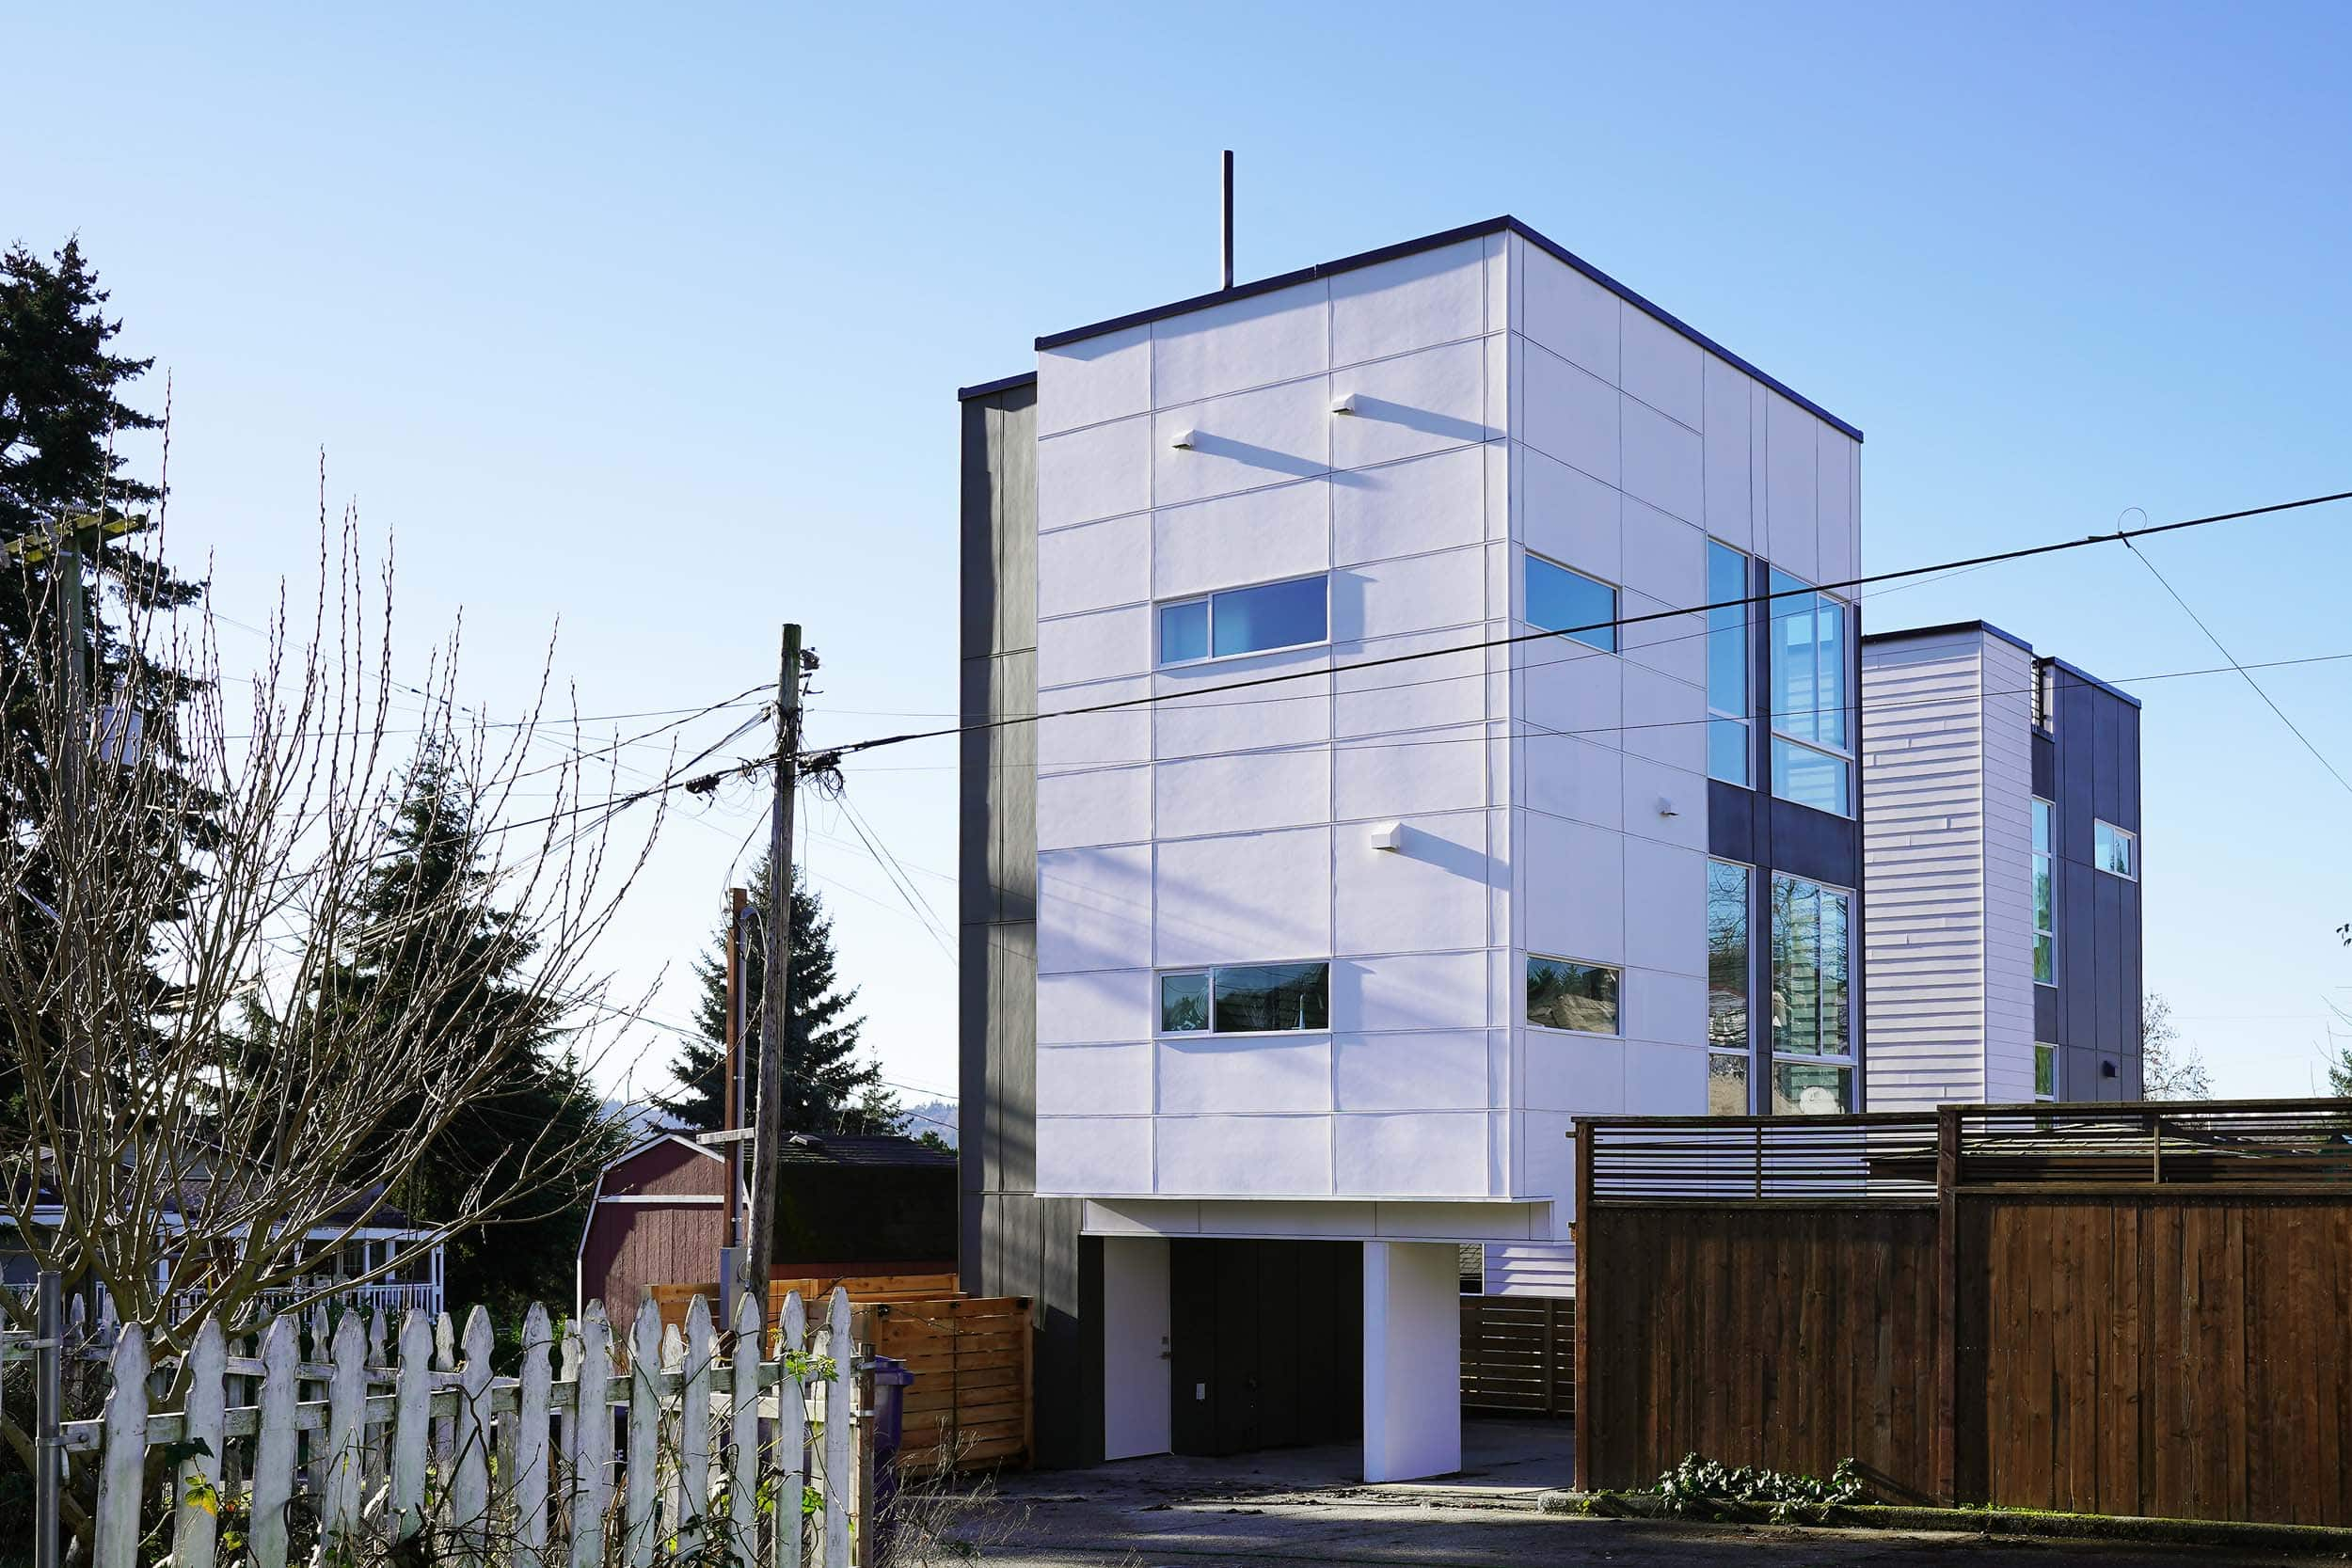 Custom design and construction of an eight micro unit row house located at 3855 21st Ave SW Seattle, WA 98106. Each unit is 600 square feet and was completed in October, 2018.